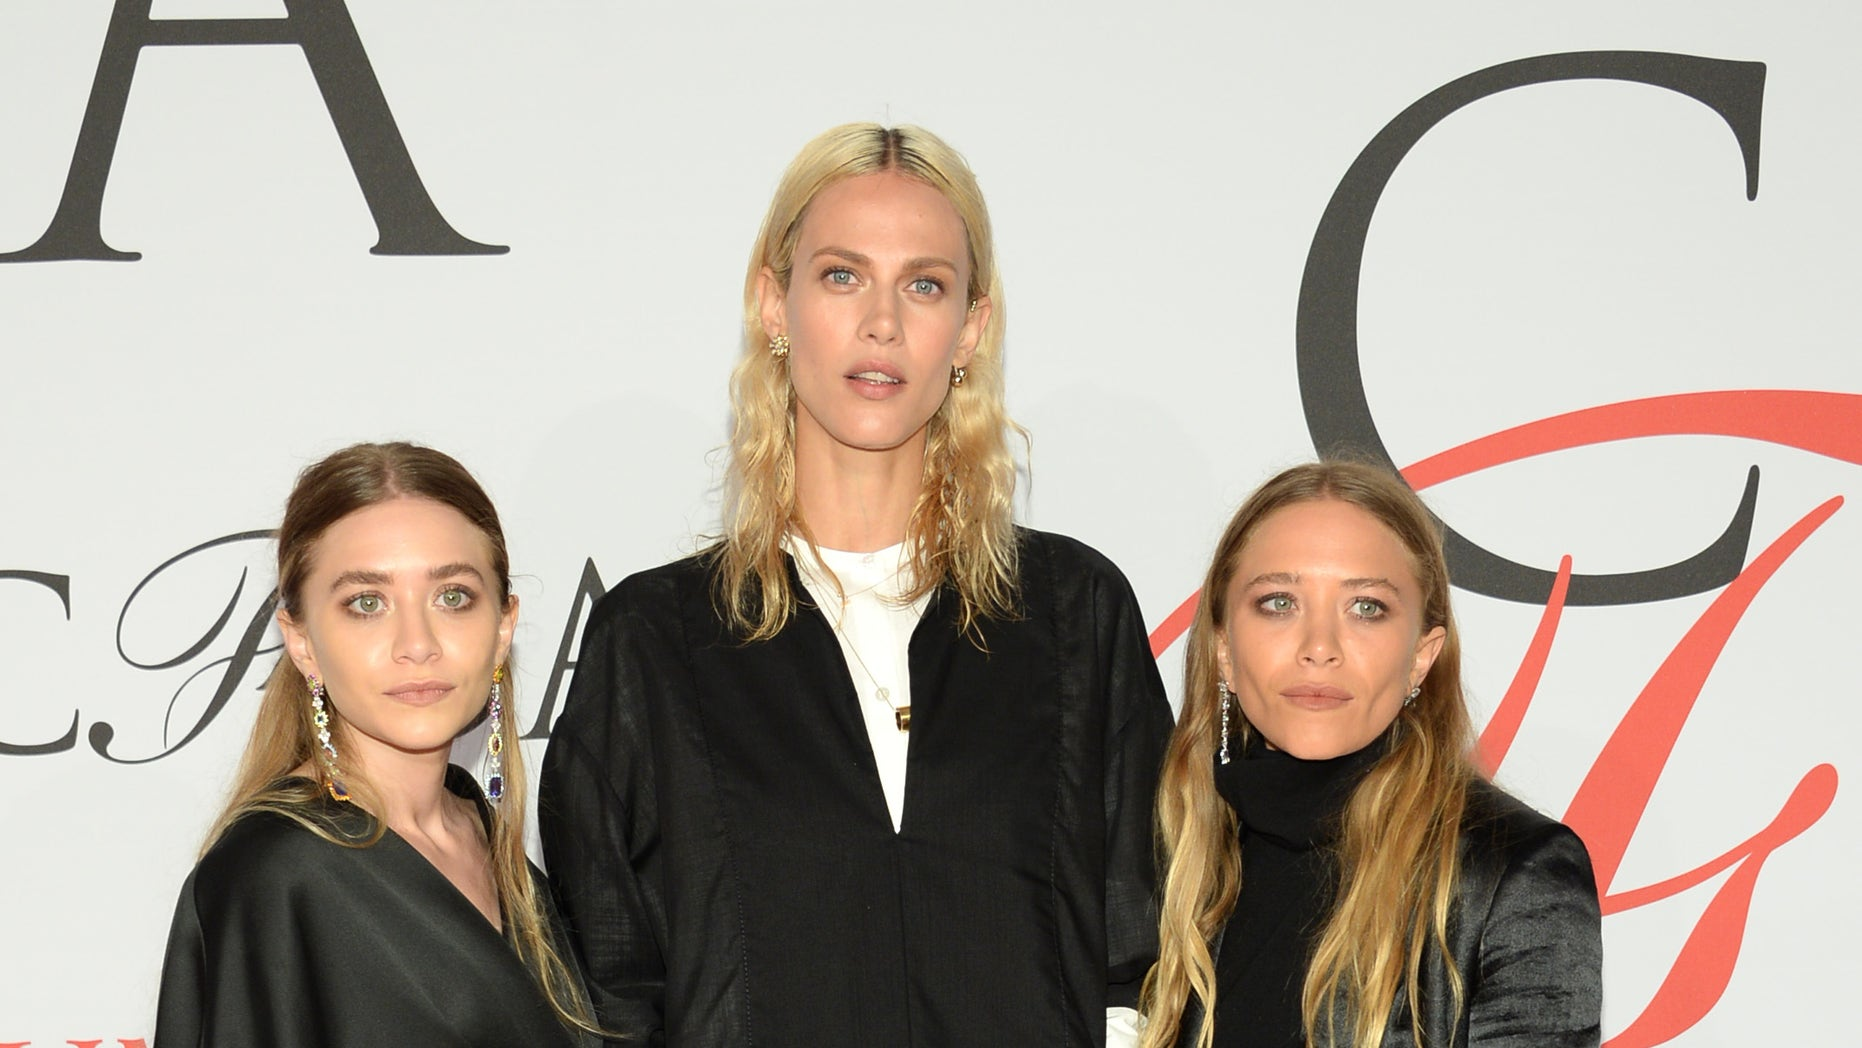 Ashley Olsen, from left, Aymeline Valade and Mary-Kate Olsen arrive at the 2015 CFDA Fashion Awards at Alice Tully Hall, Lincoln Center, on Monday, June 1, 2015, in New York. (Photo by Evan Agostini/Invision/AP)